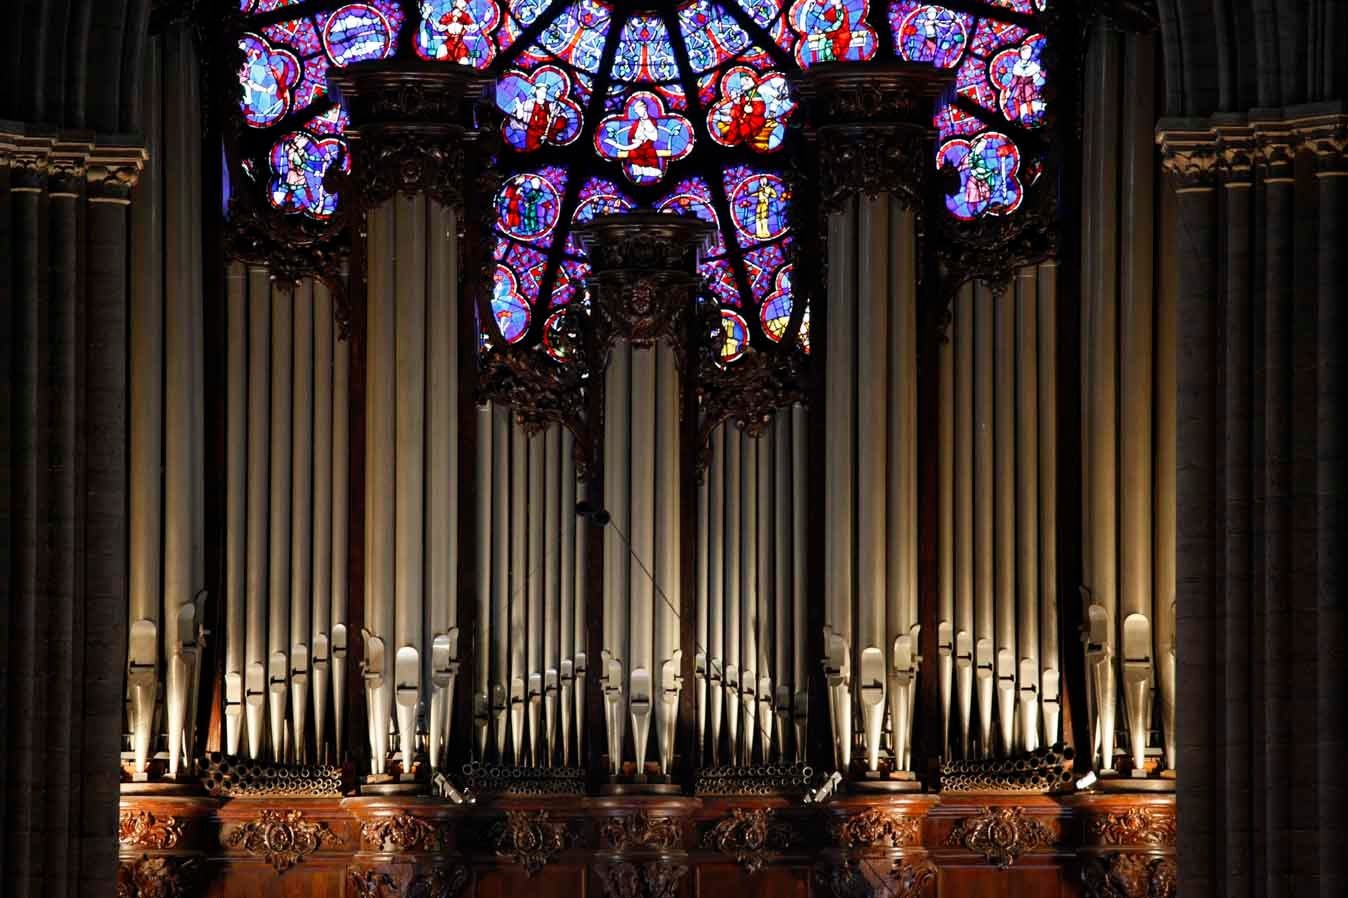 Le Grand Orgue de Notre Dame, Getty Images